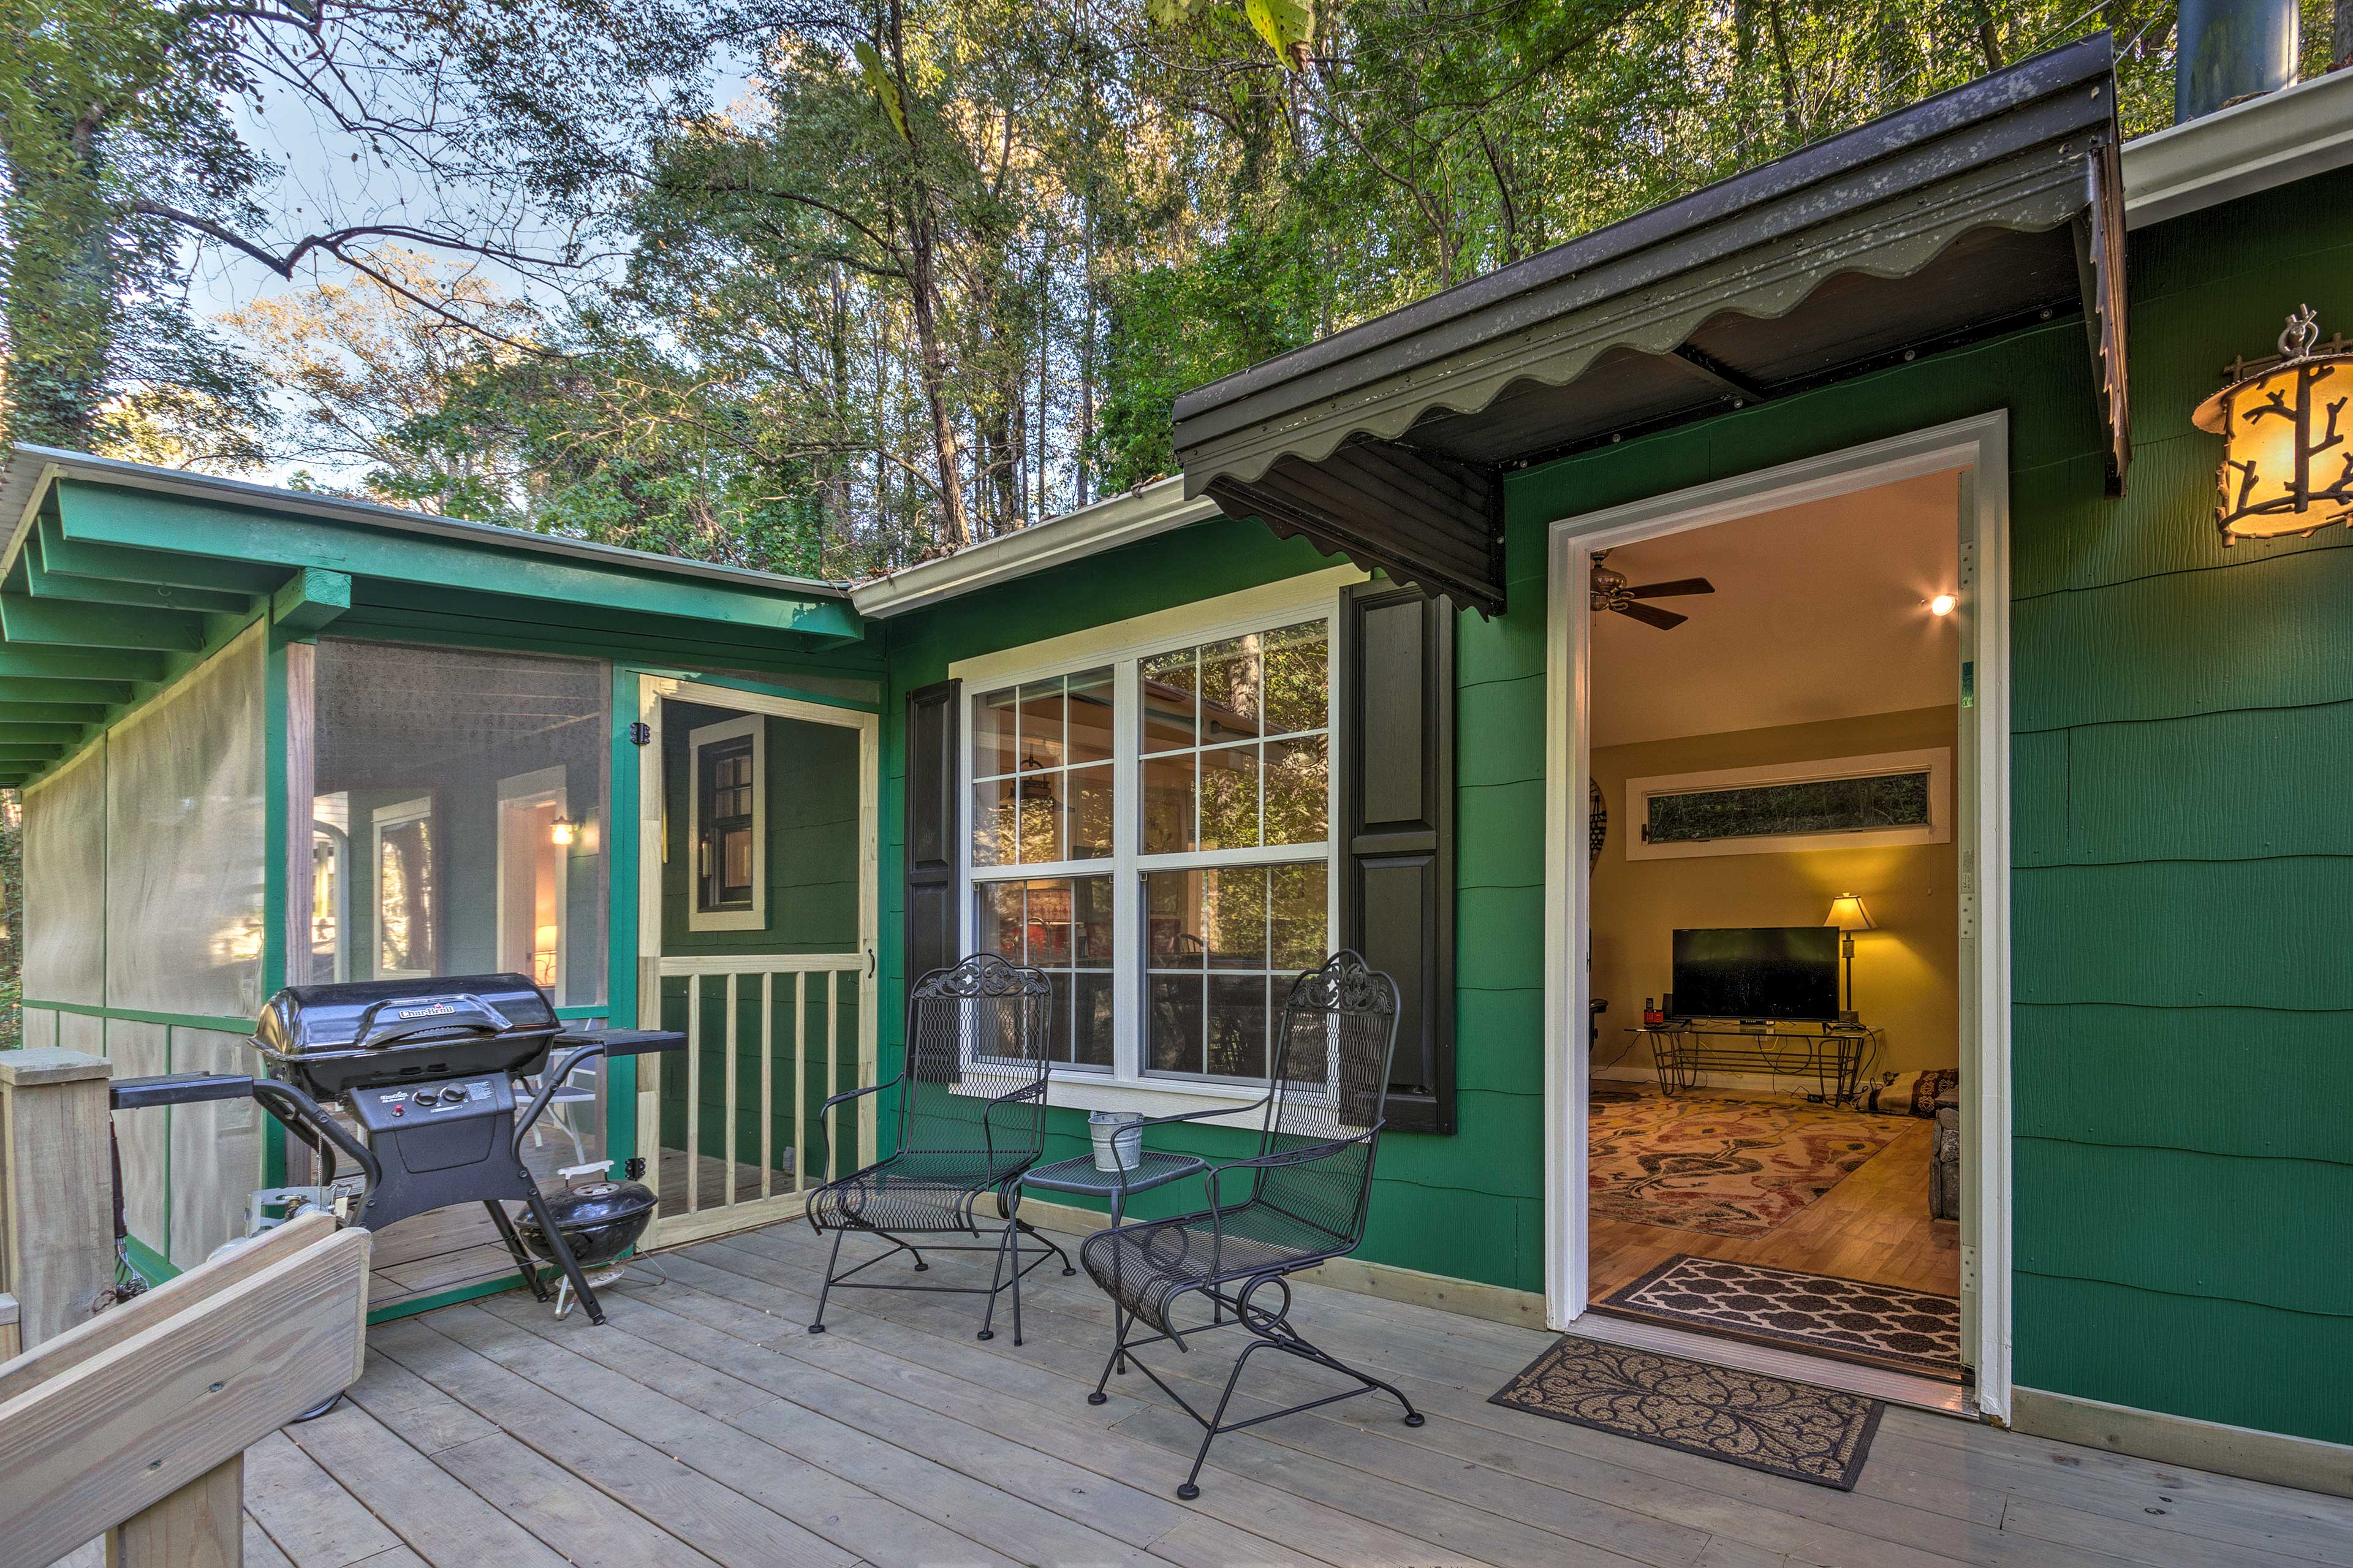 '55 Riverby Lane' features room for 2, a gas grill, screened porch, and more!